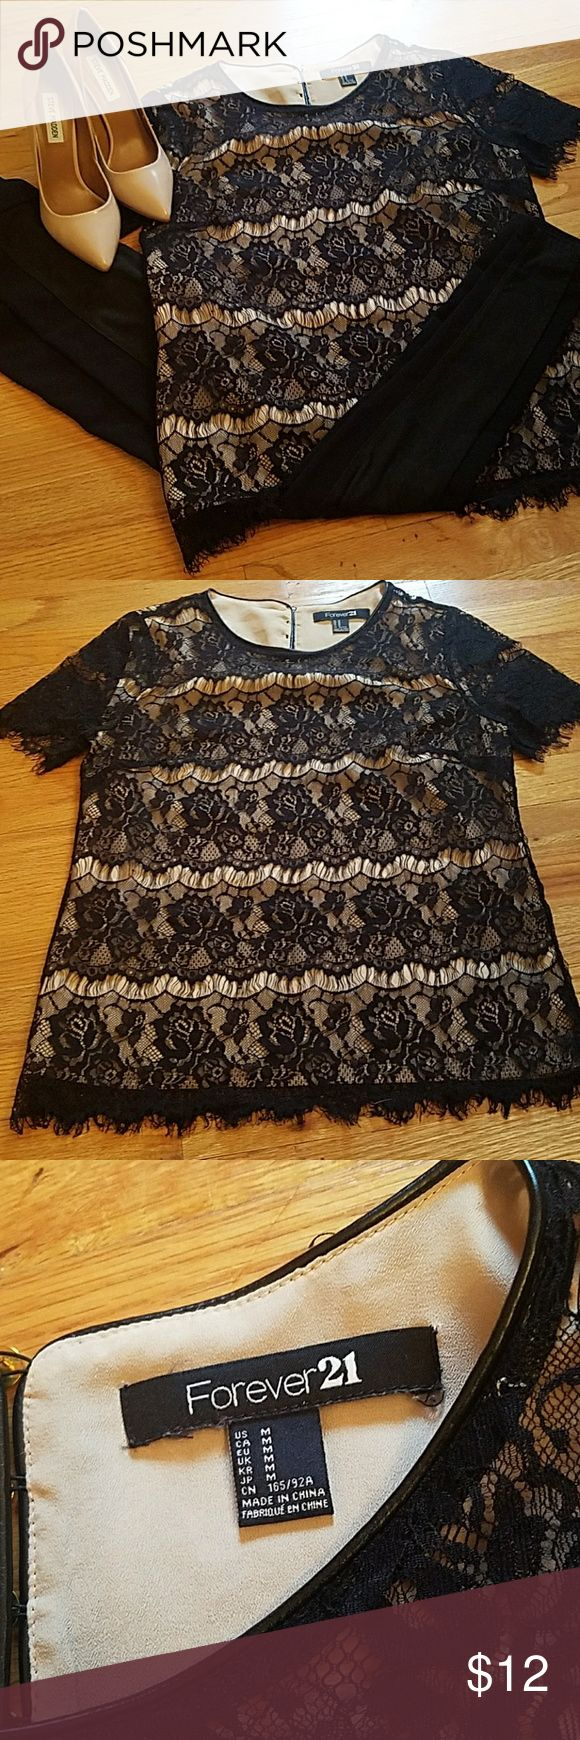 Black and Nude Forever 21 Top Med Medium black and nude top from forever 21. Nude shirt with sheer black lace material overtop. The lace is still intact no damage. The sleeves are sheer with no material underneath.  Send me an offer ! Forever 21 Tops Tees - Short Sleeve